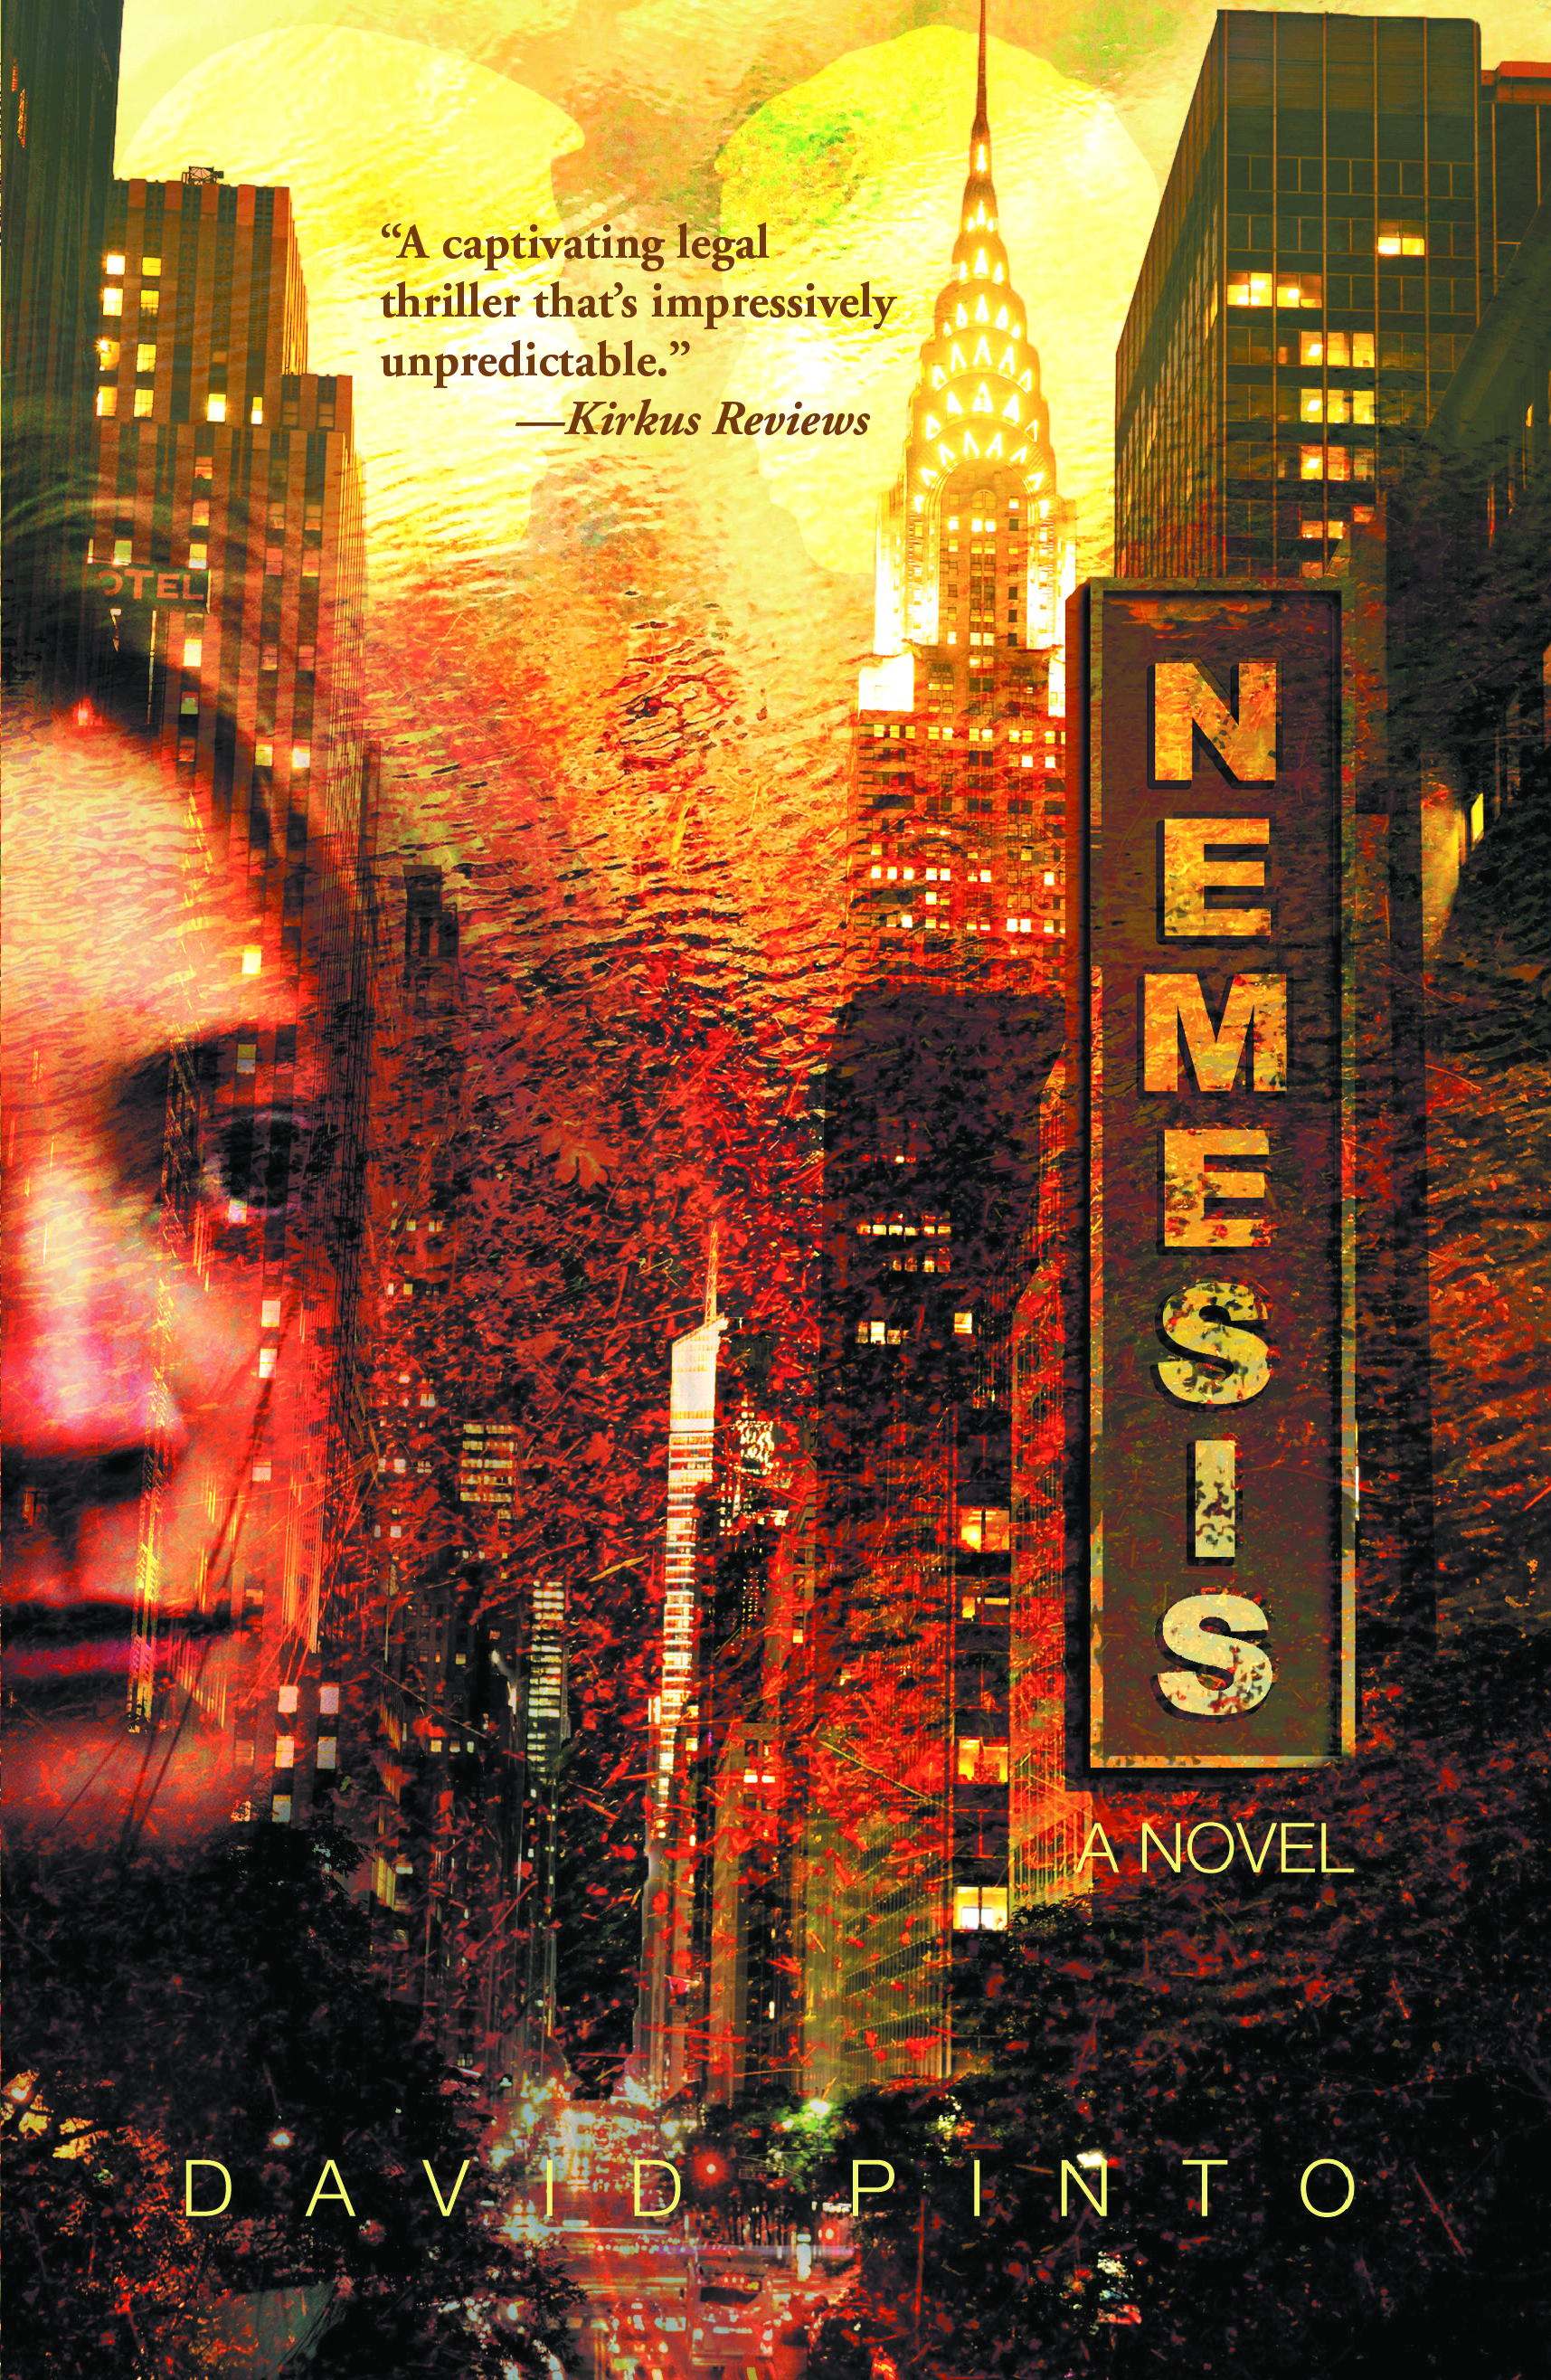 Cover of Nemesis A Nobel by David Pinto featuring a close-up on a woman's face with a New York background